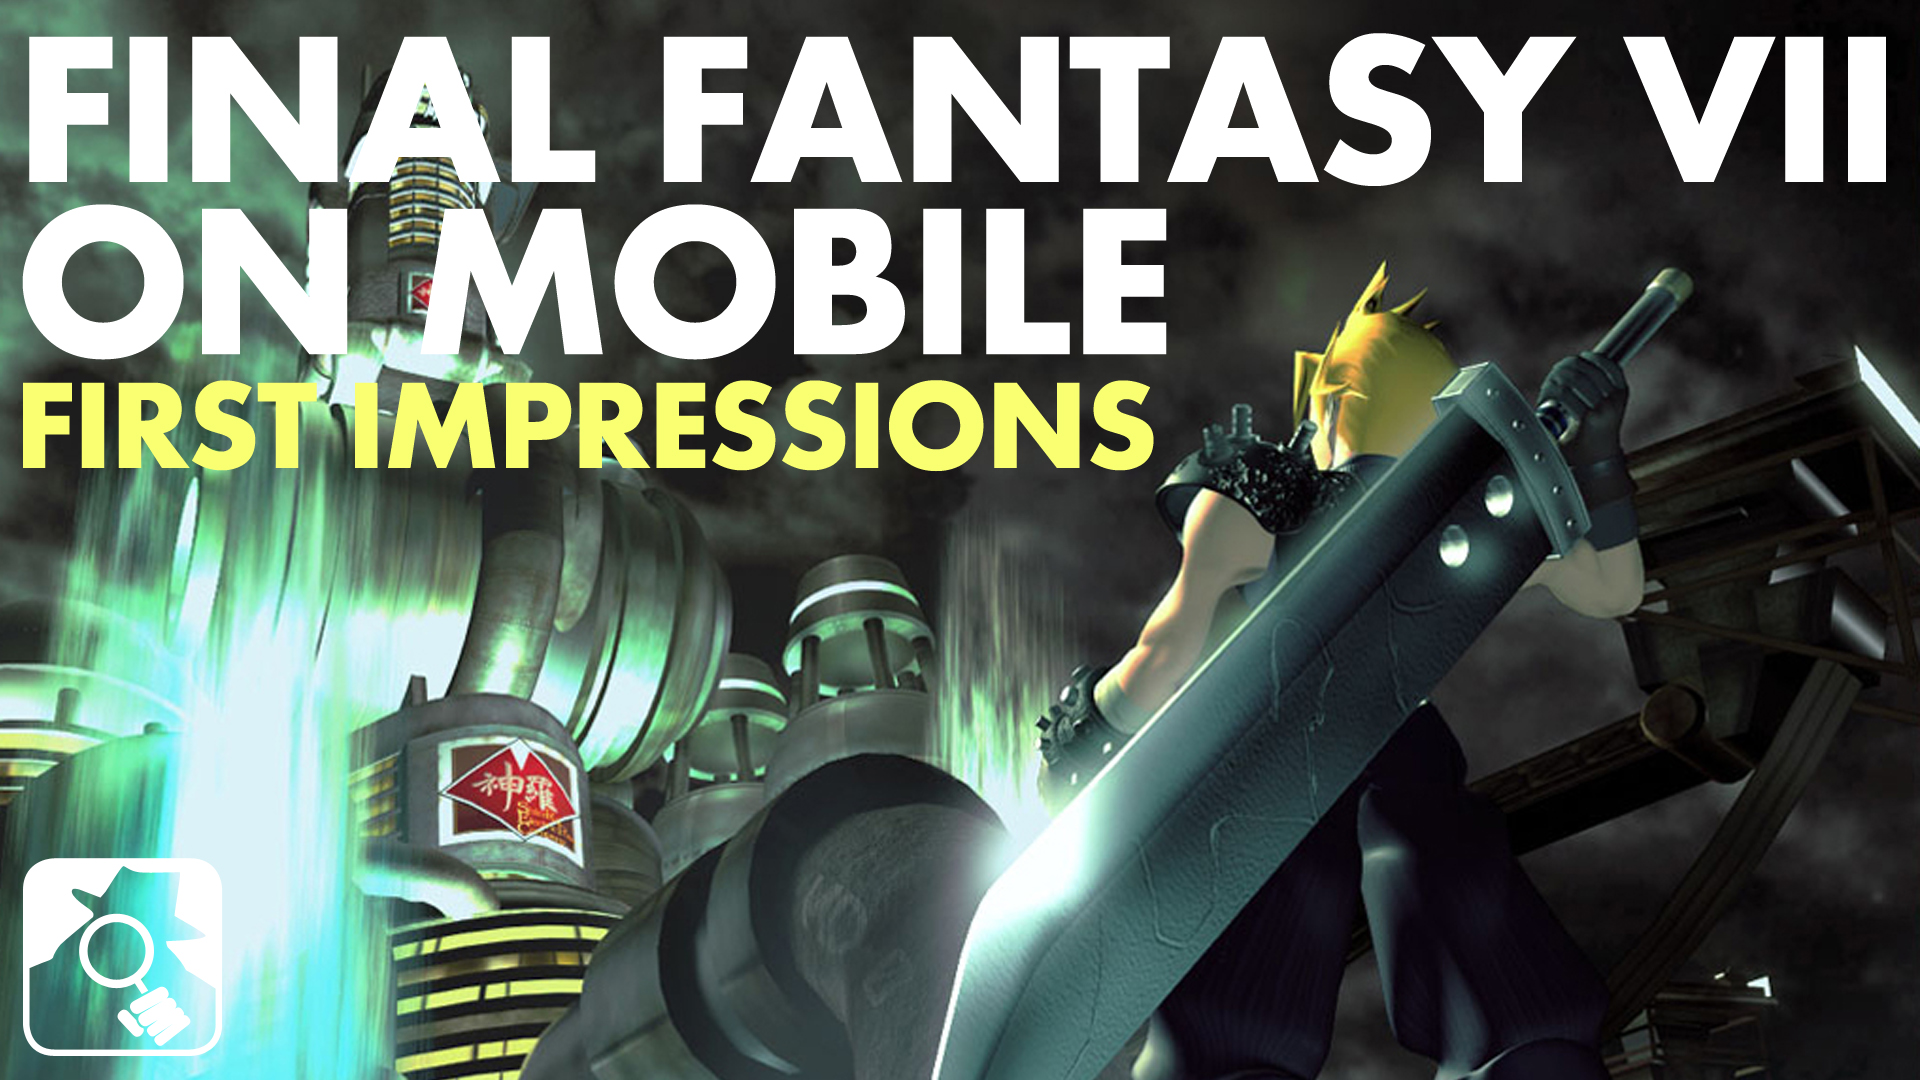 First impressions of Final Fantasy VII: What's changed, and is it any good?